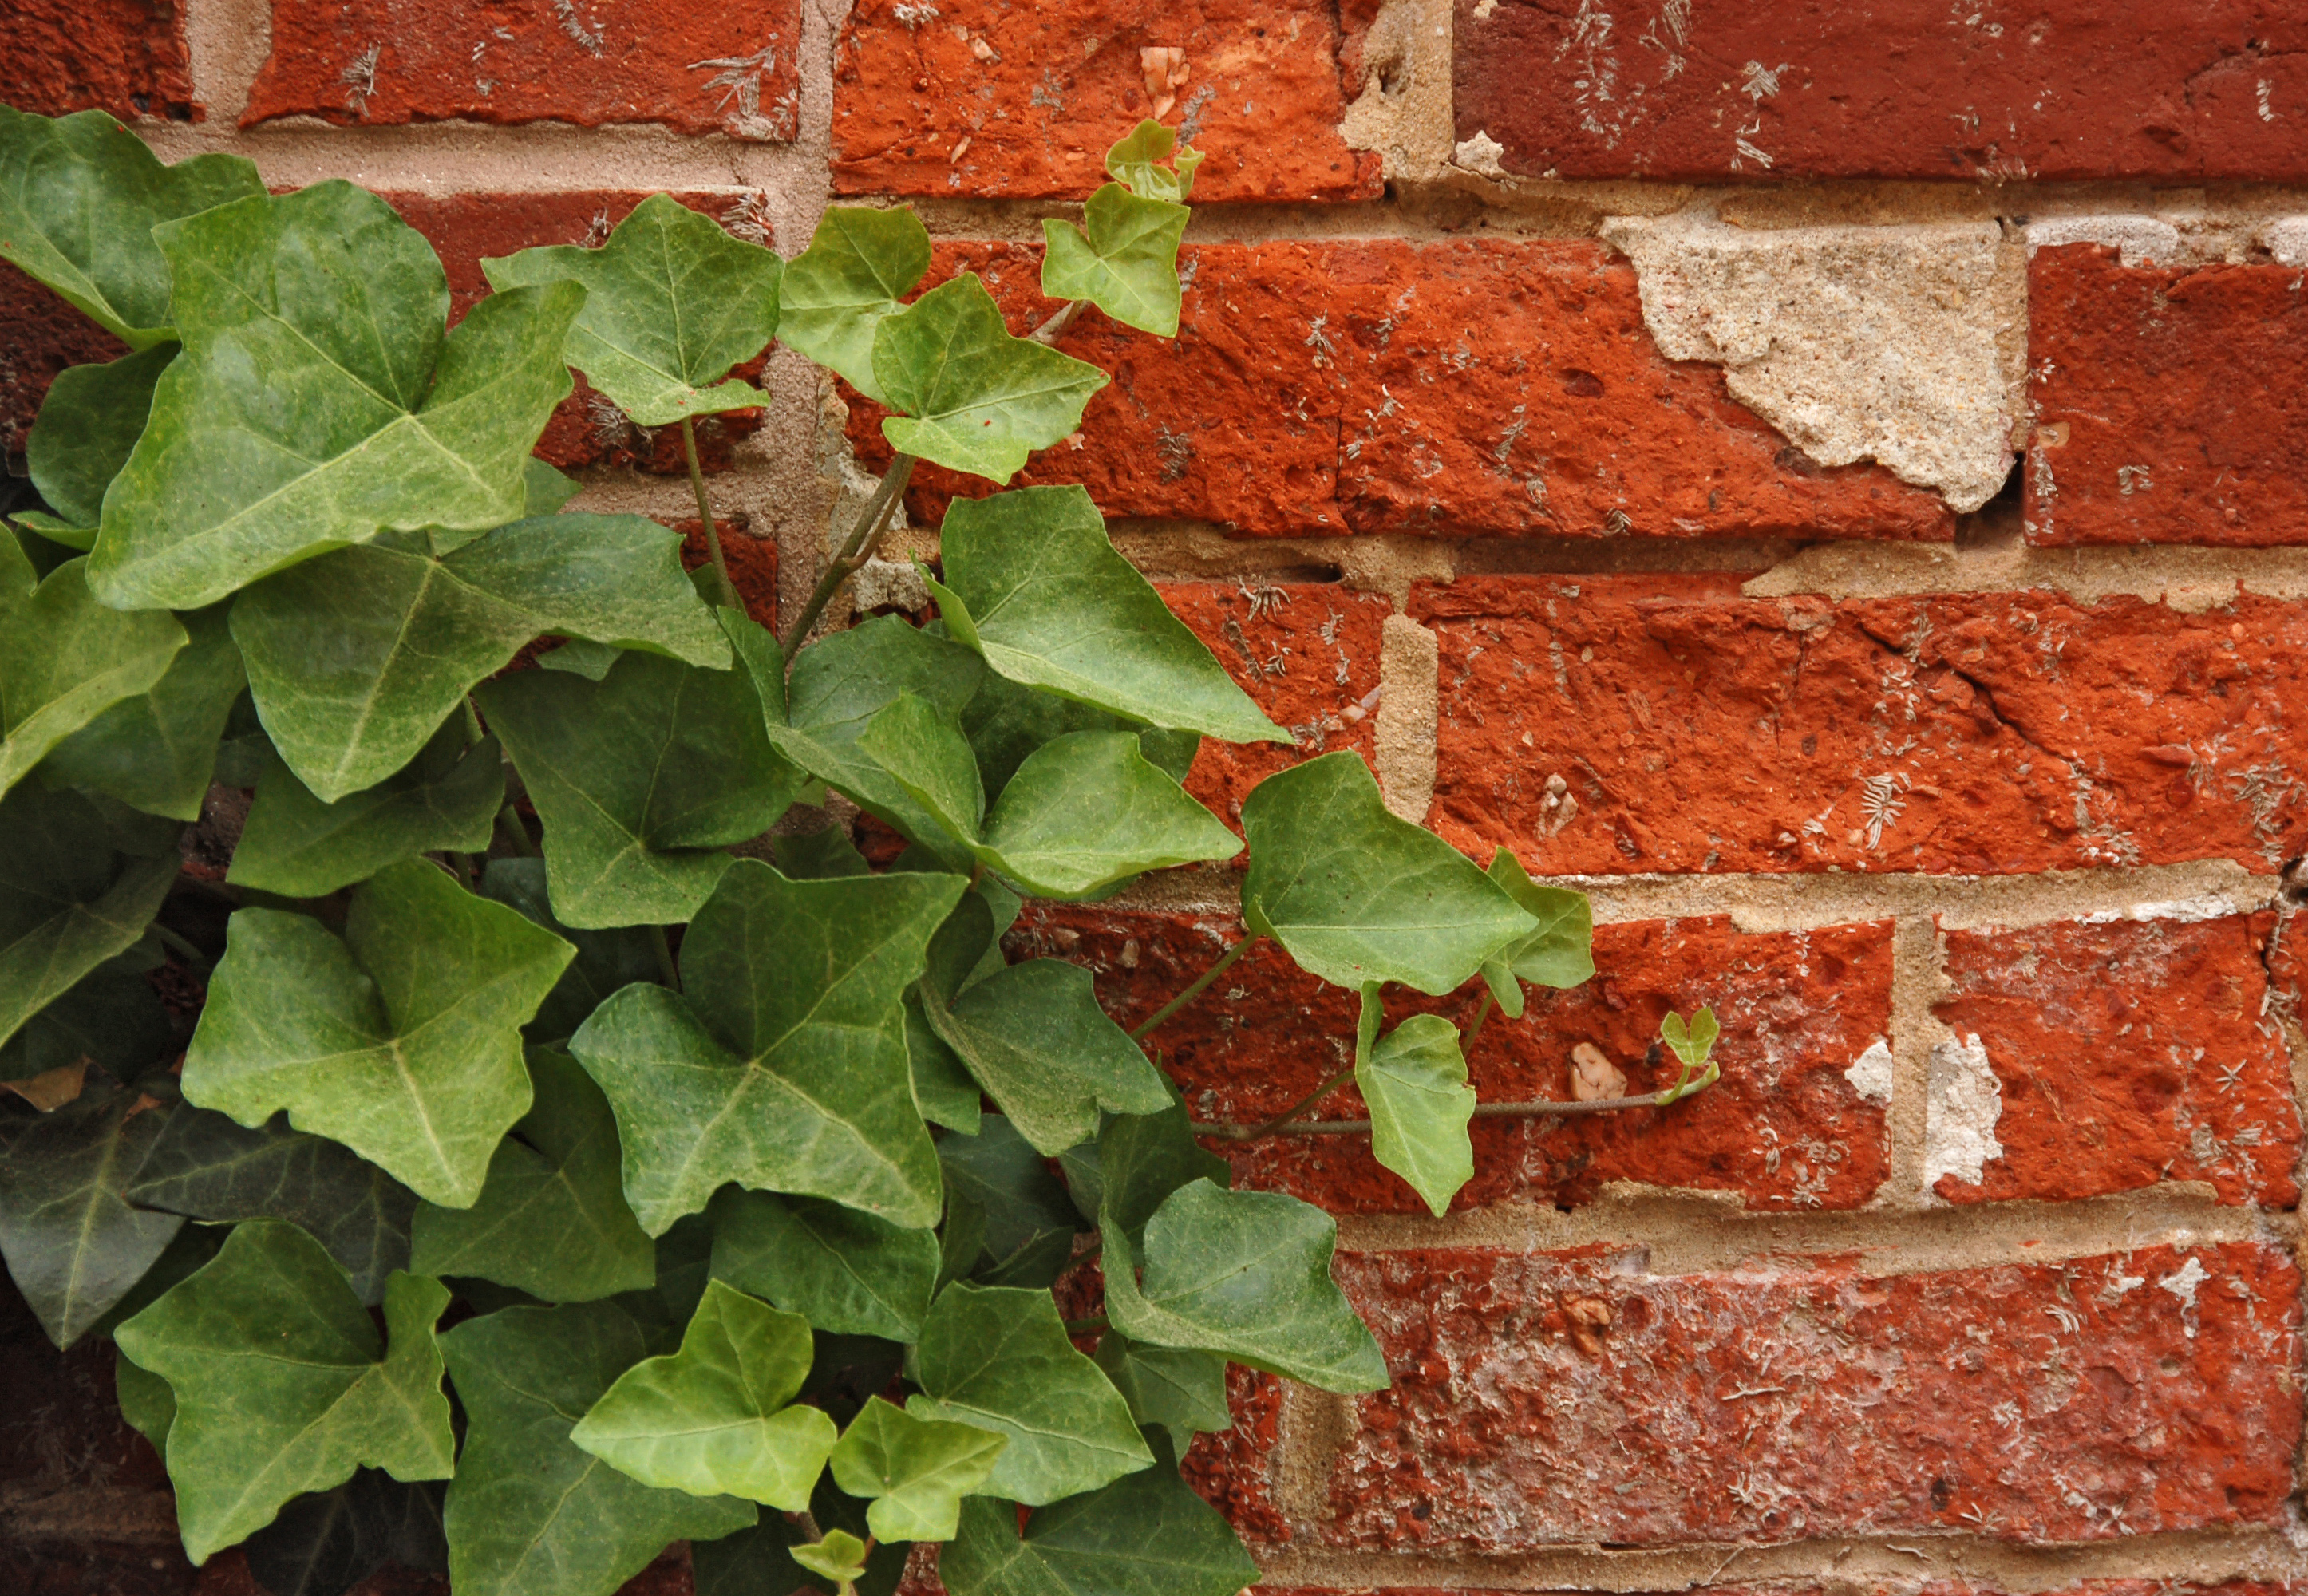 Photograph of English Ivy (Hedera helix) growing on a red brick wall. The photo was taken in the city of Lancaster, Pennsylvania, by Derek L. Ramsey.